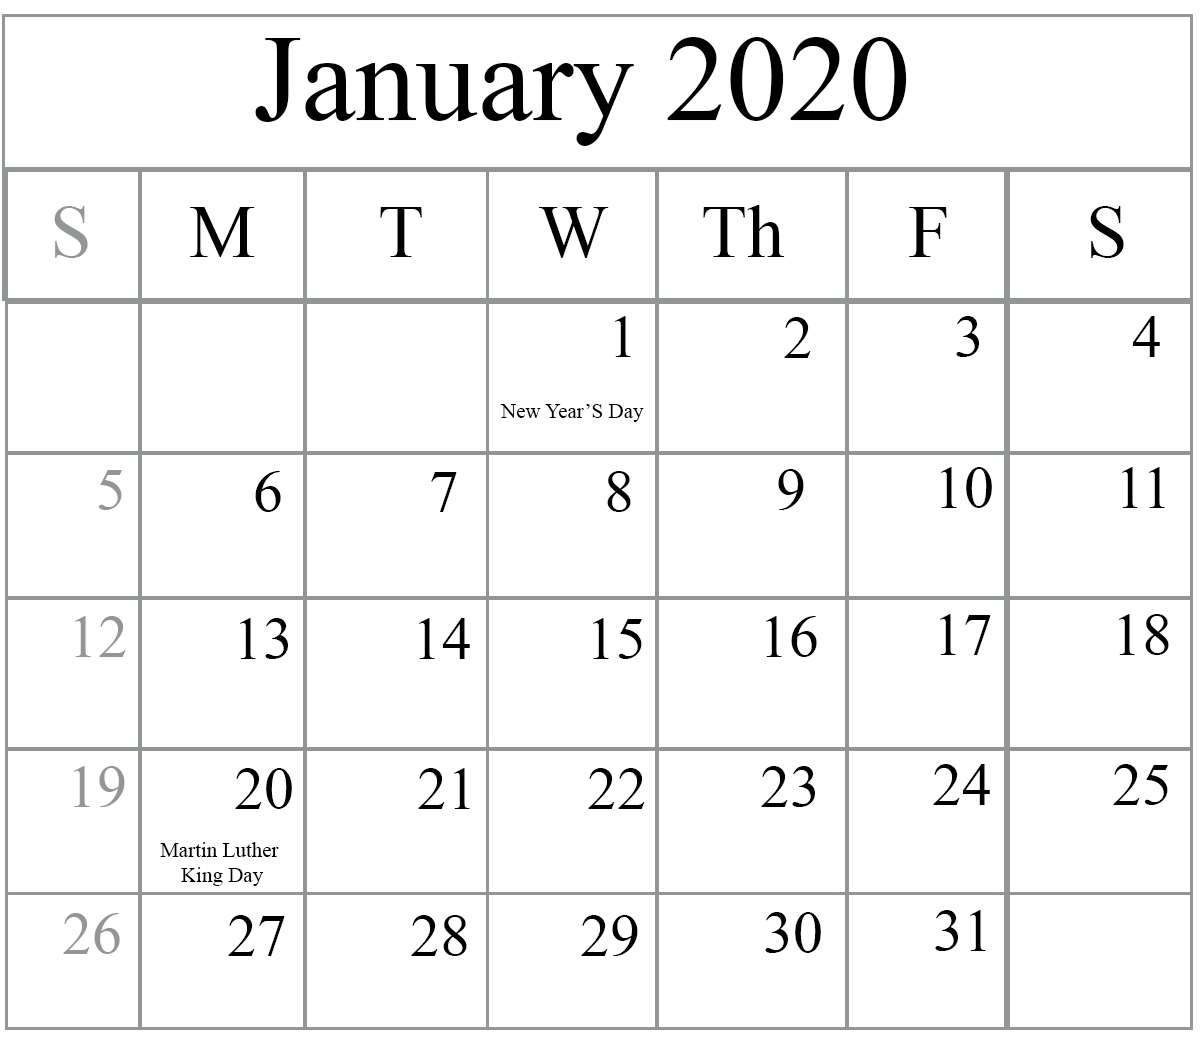 Free January 2020 Printable Calendar In Pdf, Excel & Word-Blank Calandar Of Events 2020